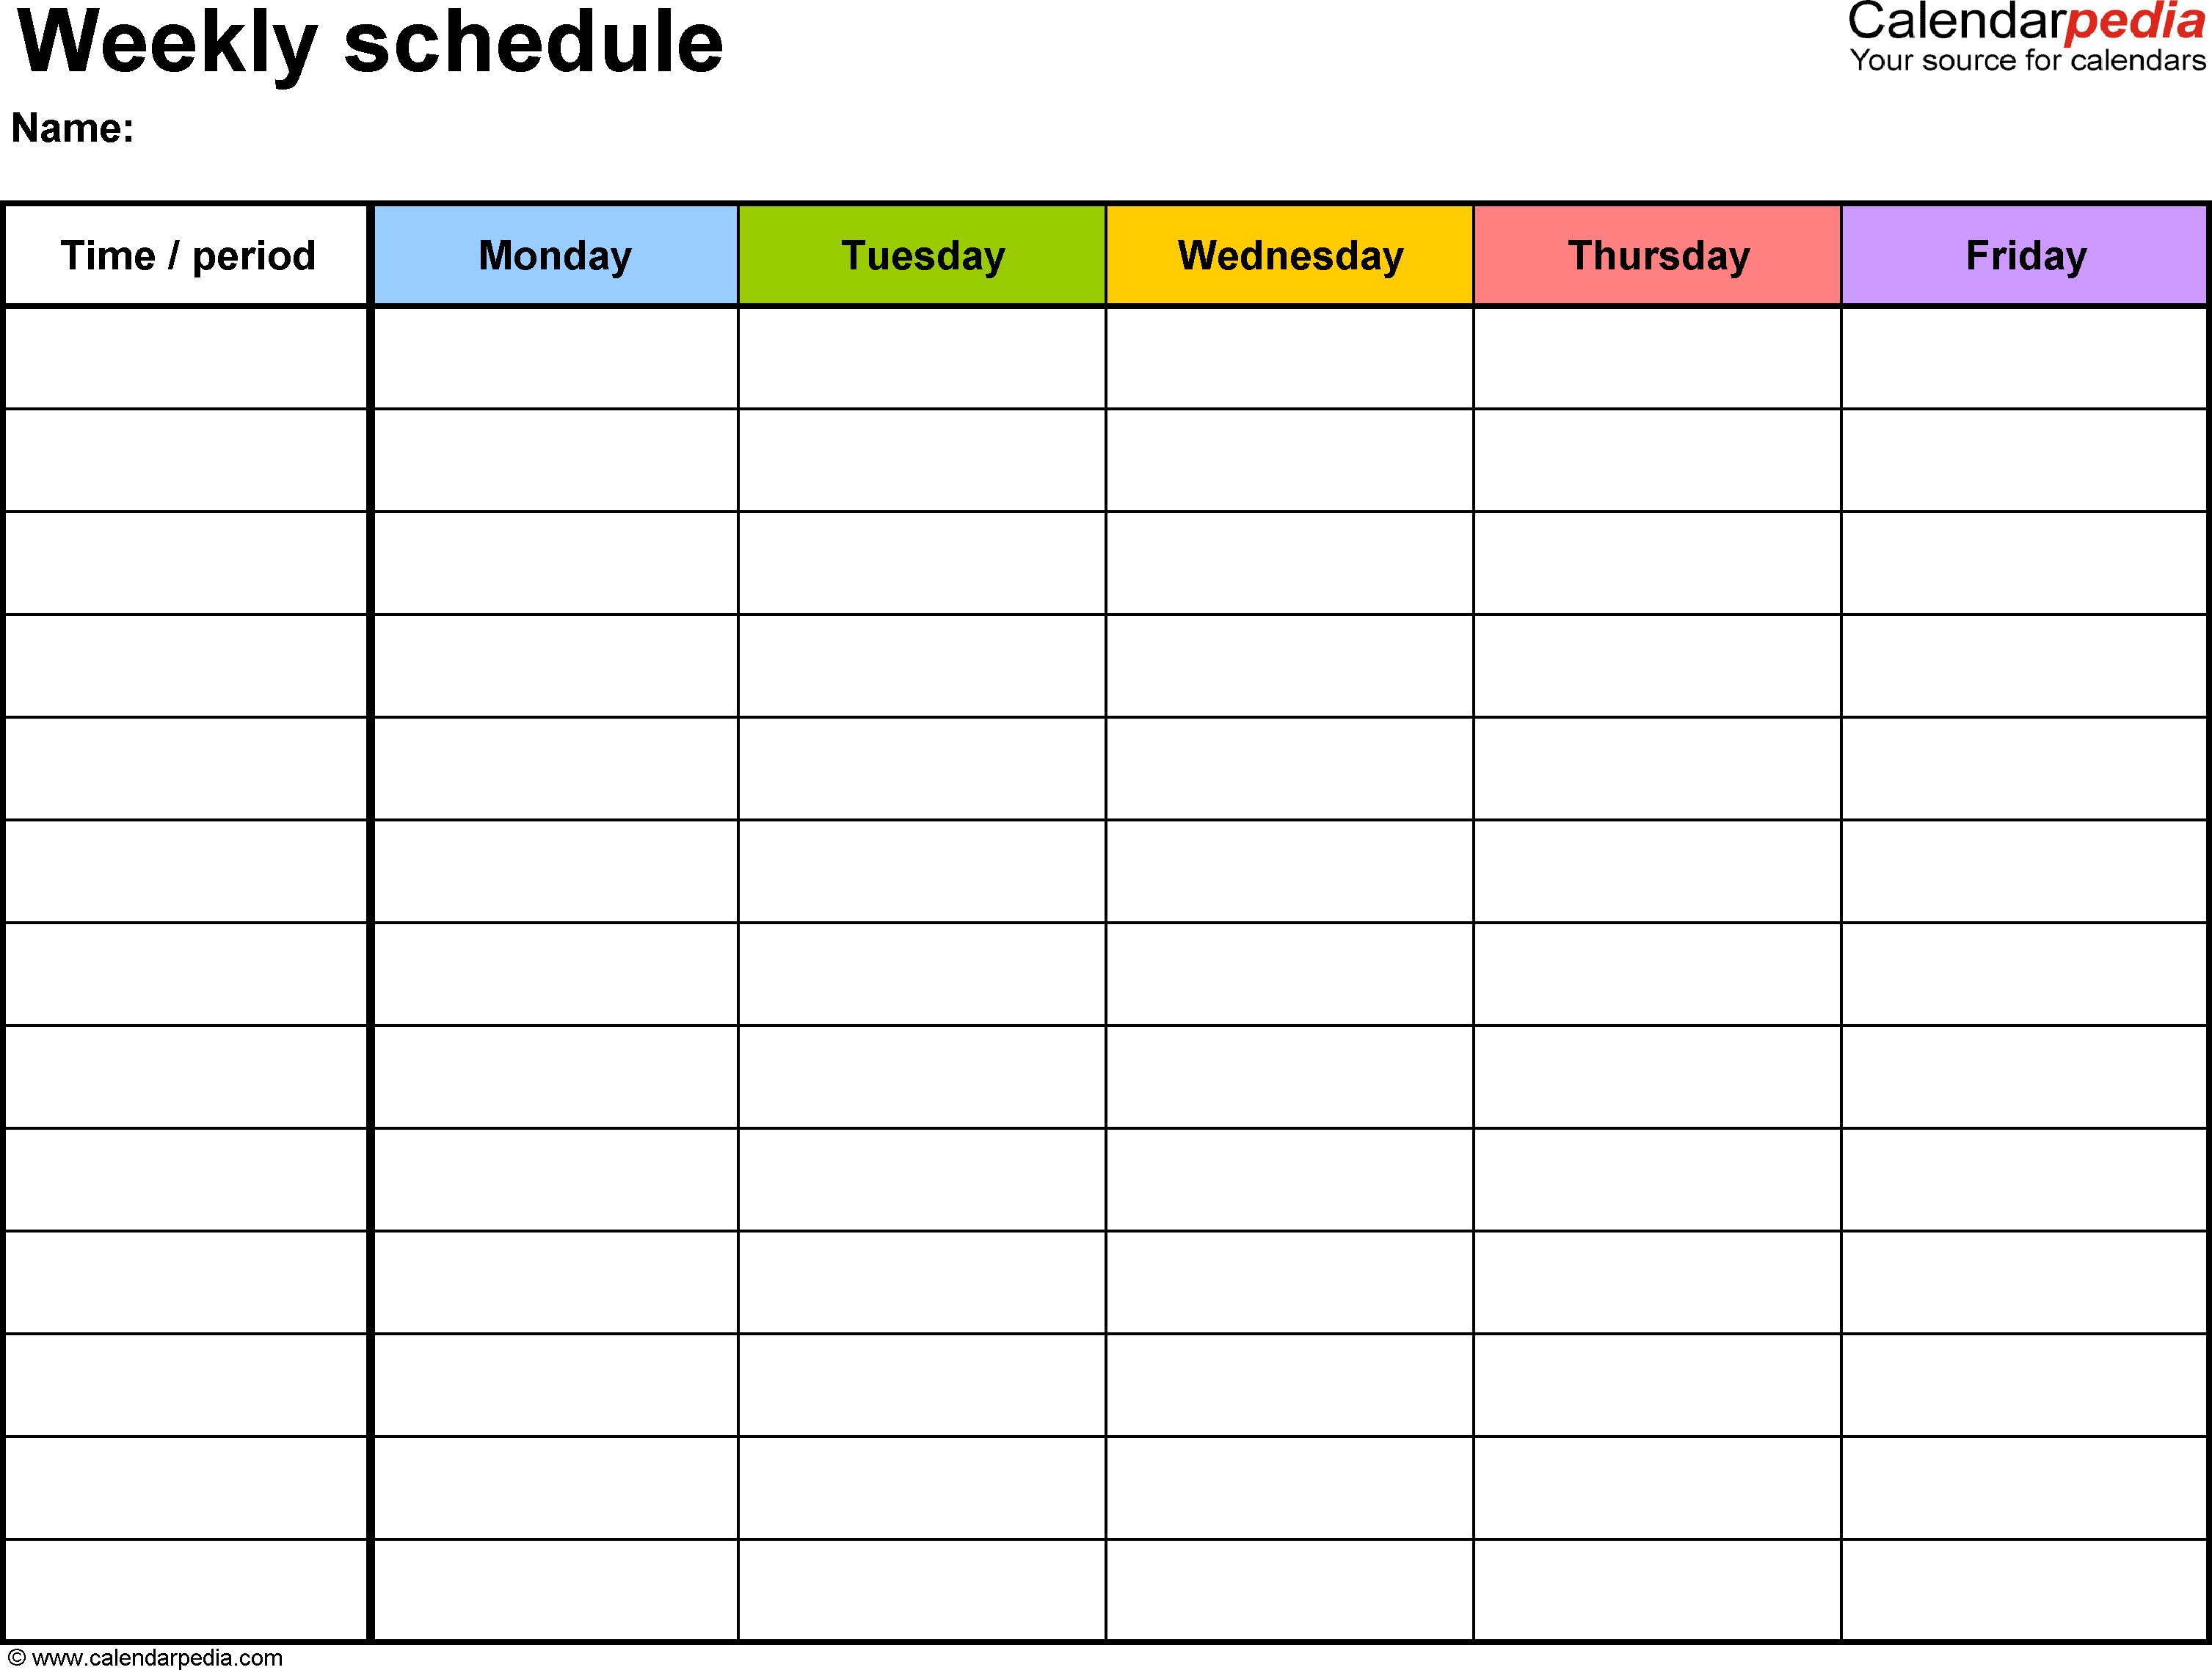 Blank Weekly Calendar With Times - Infer.ifreezer.co regarding Free Calendar With Time Slots Template